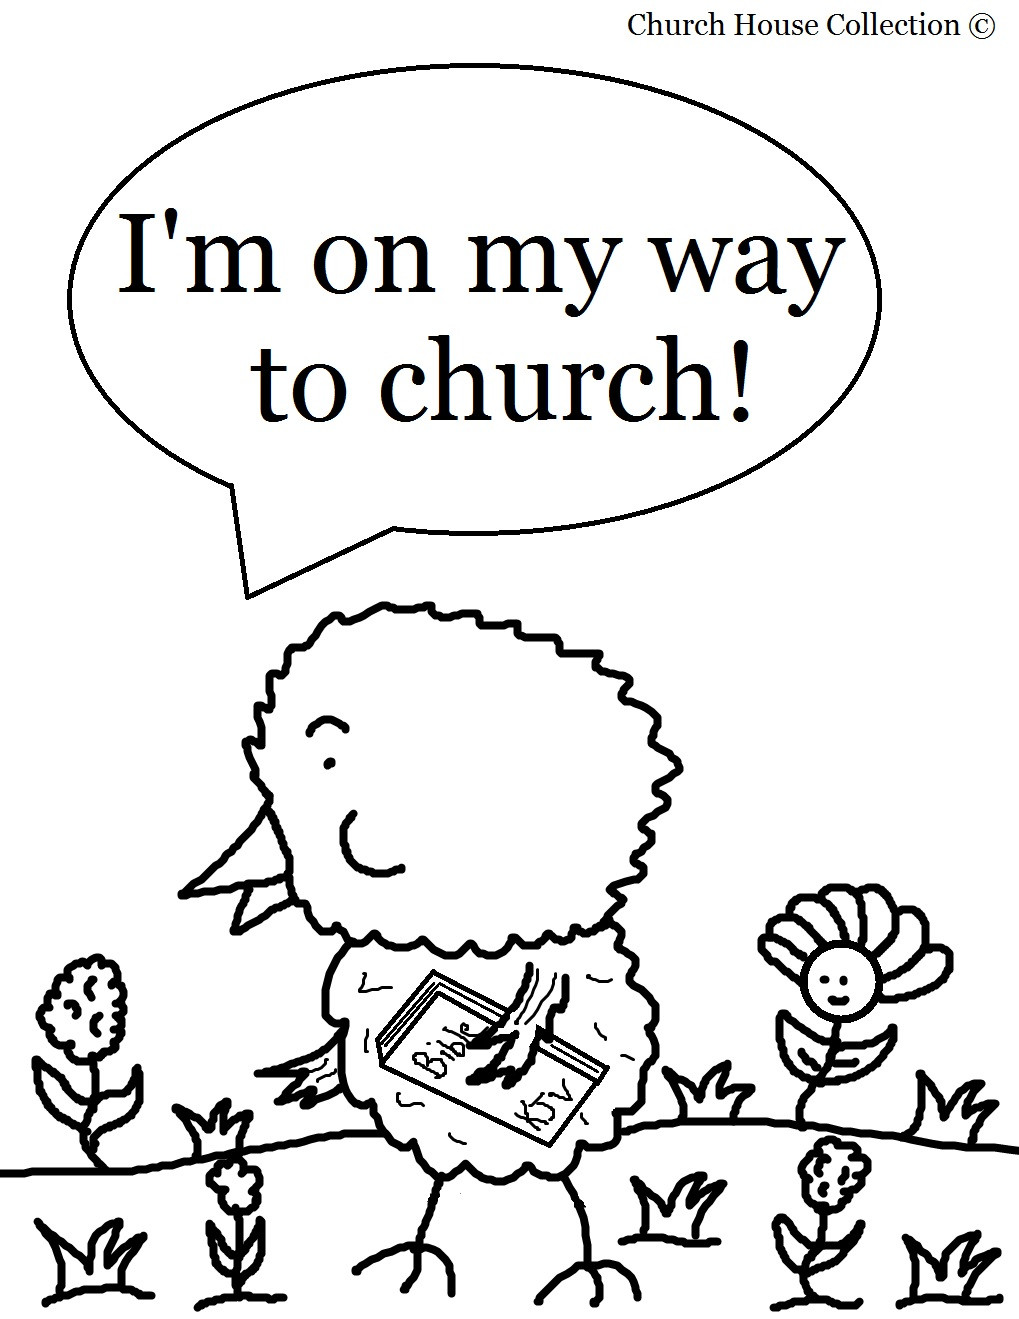 Free Coloring Pages For Sunday School  Church House Collection Blog March 2013